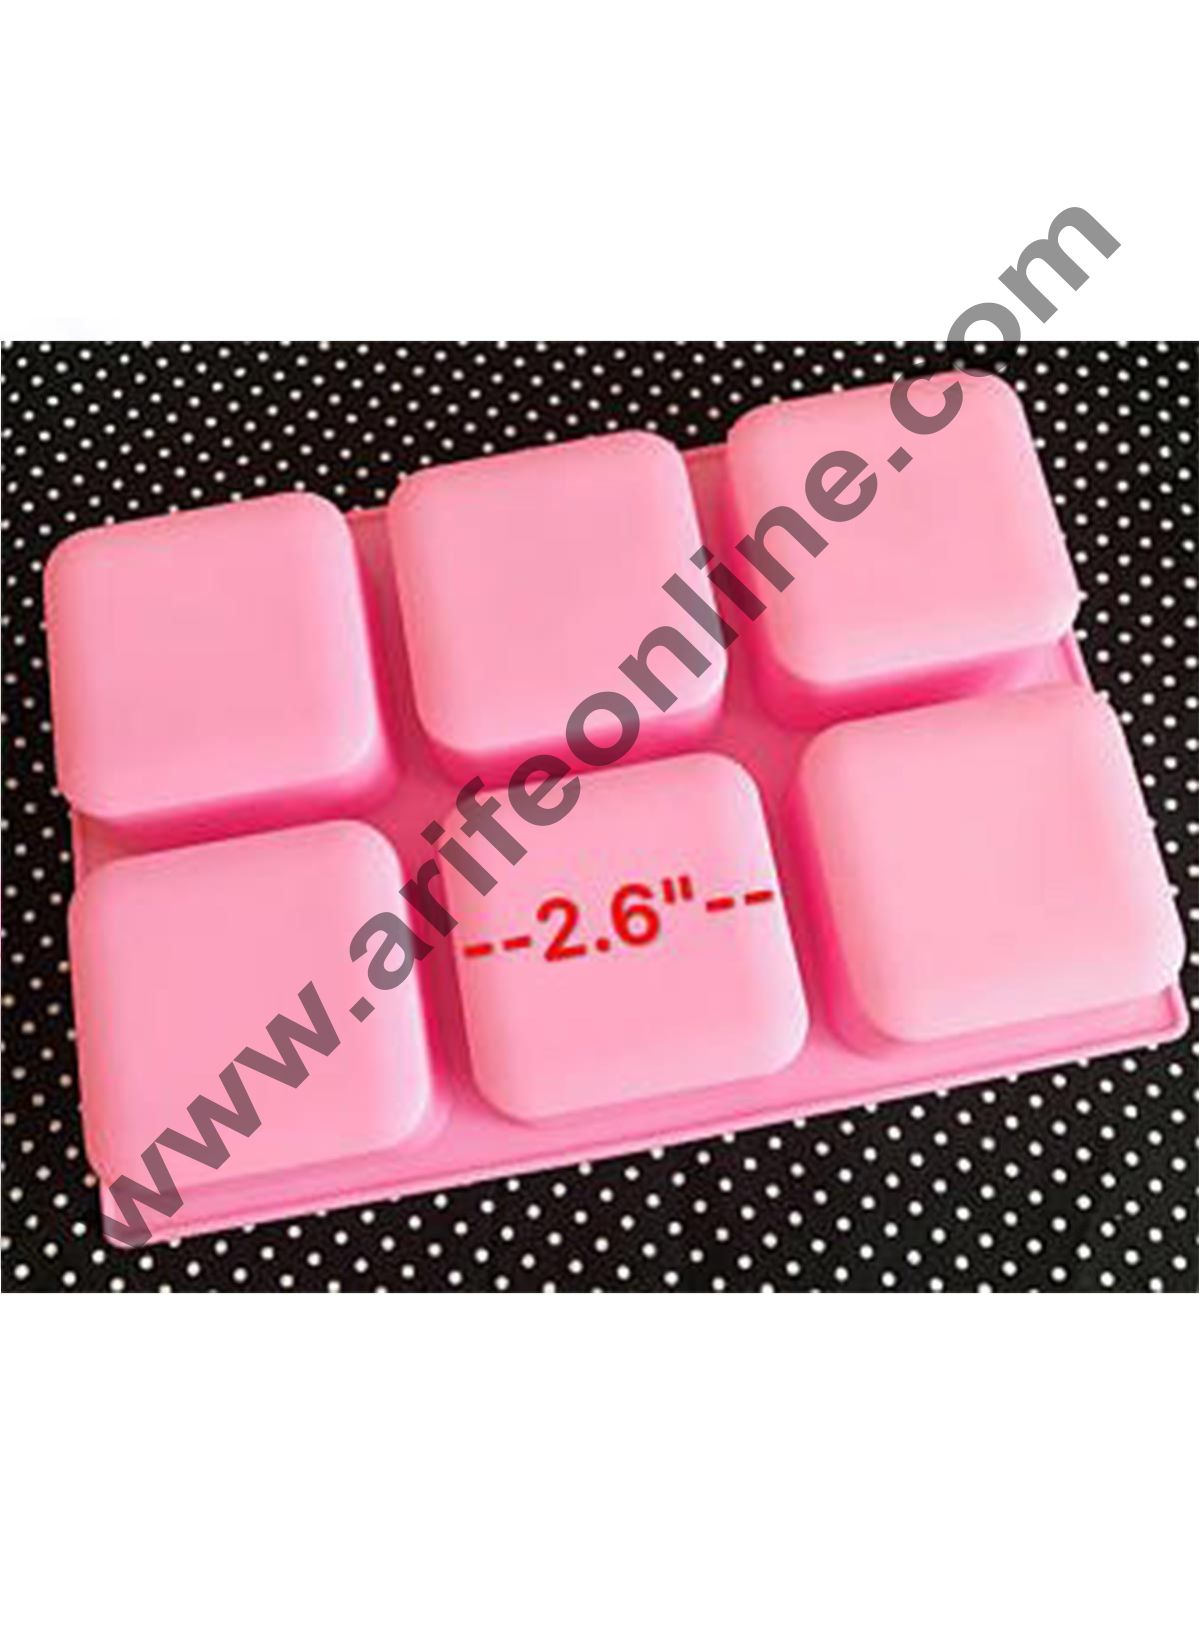 Cake Decor 6 Cavity Basic Square Design Homemade Melt and Pour Soap Cold Process Soap Muffins All Purpose Mould ; Soap Weight : Approx 120 Grams